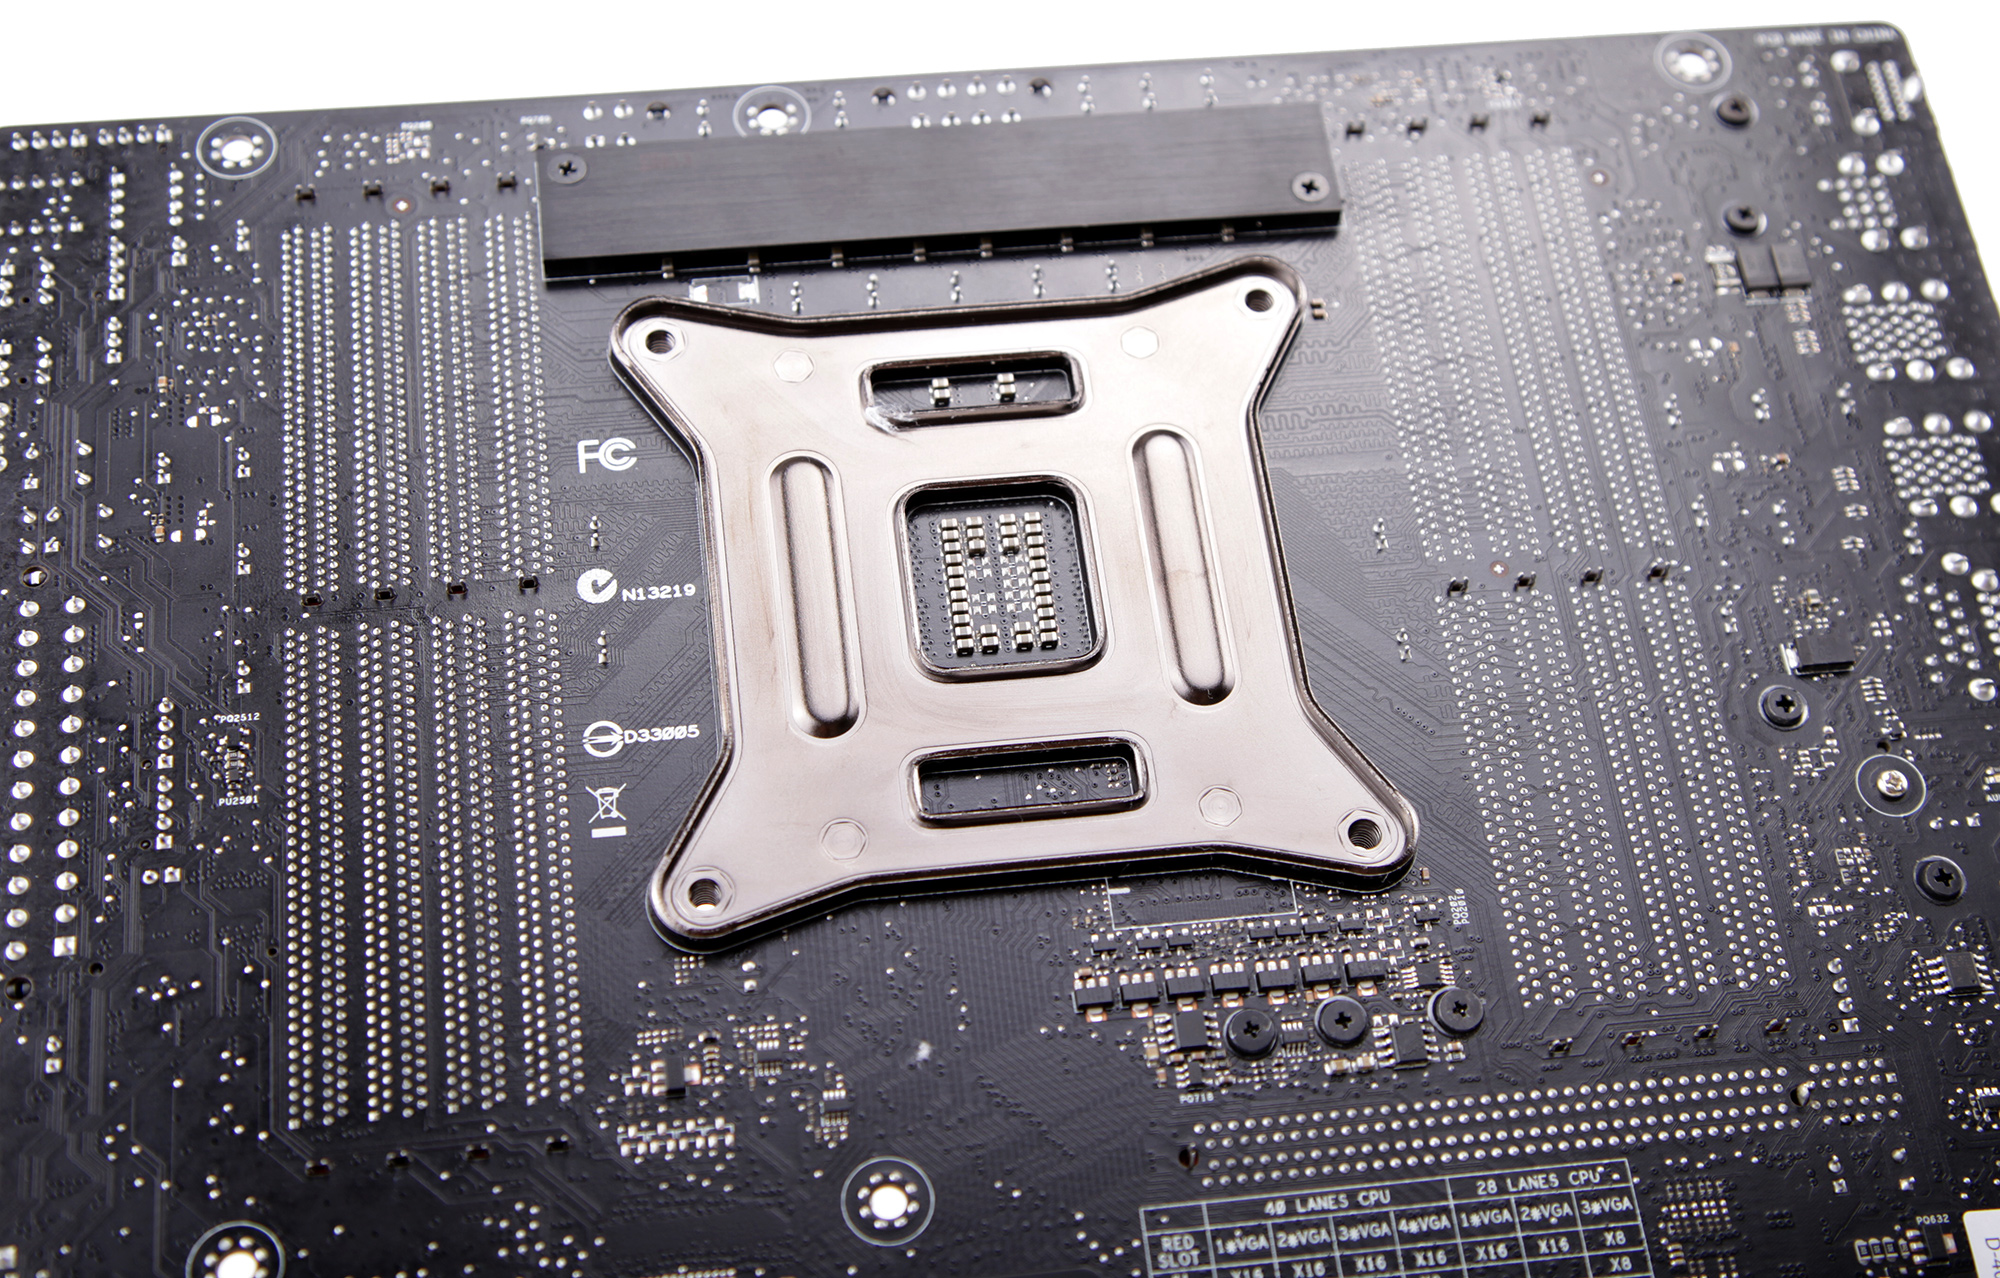 Guide: Install X-Socket II on Rampage V Extreme | ROG - Republic of